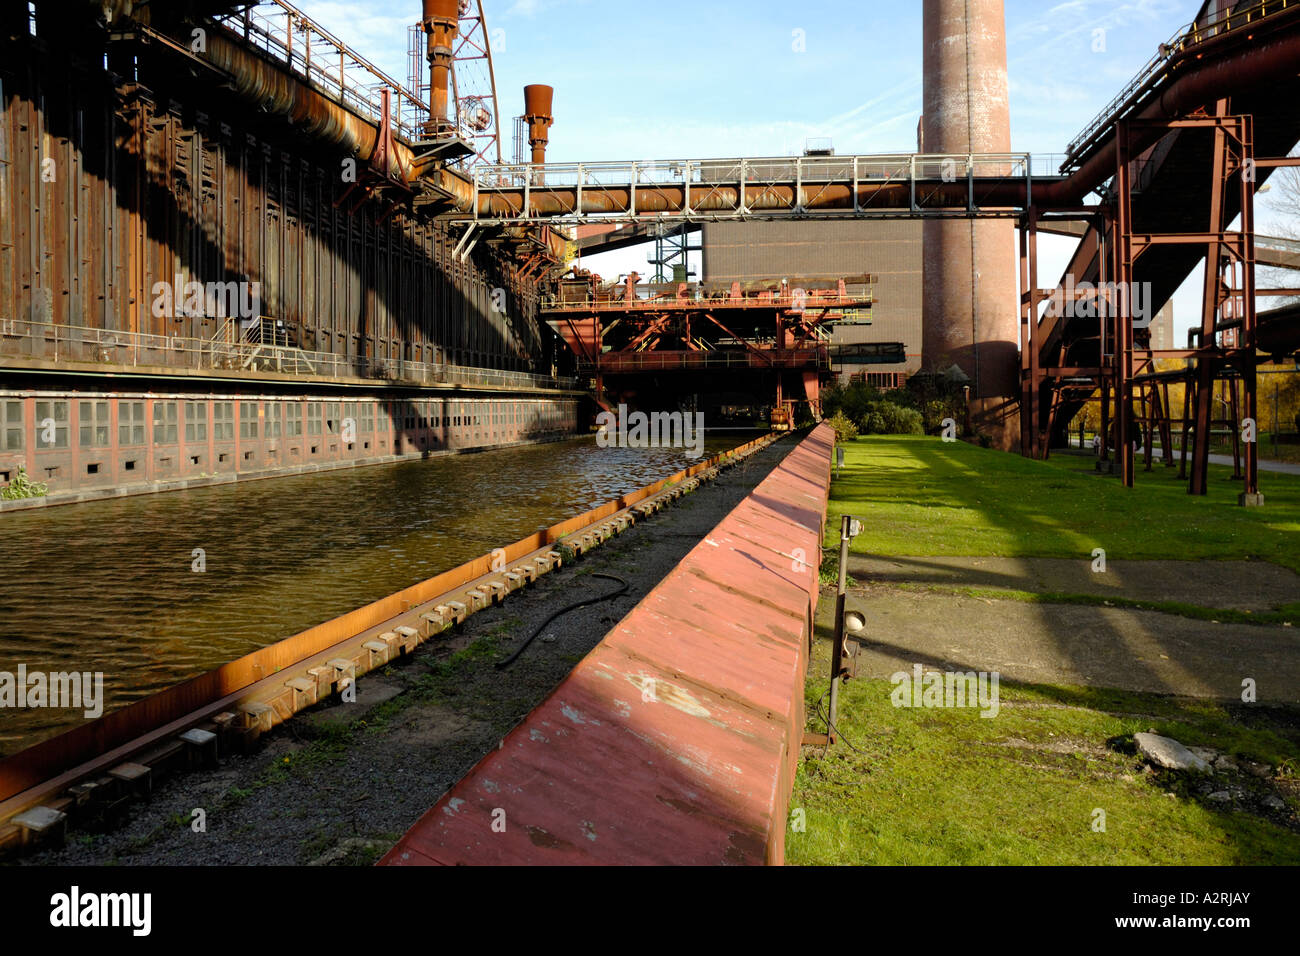 Zollverein coking plant, Essen, Germany, showing water installed for the 'Sun, Moon and Stars' exhibition - Stock Image